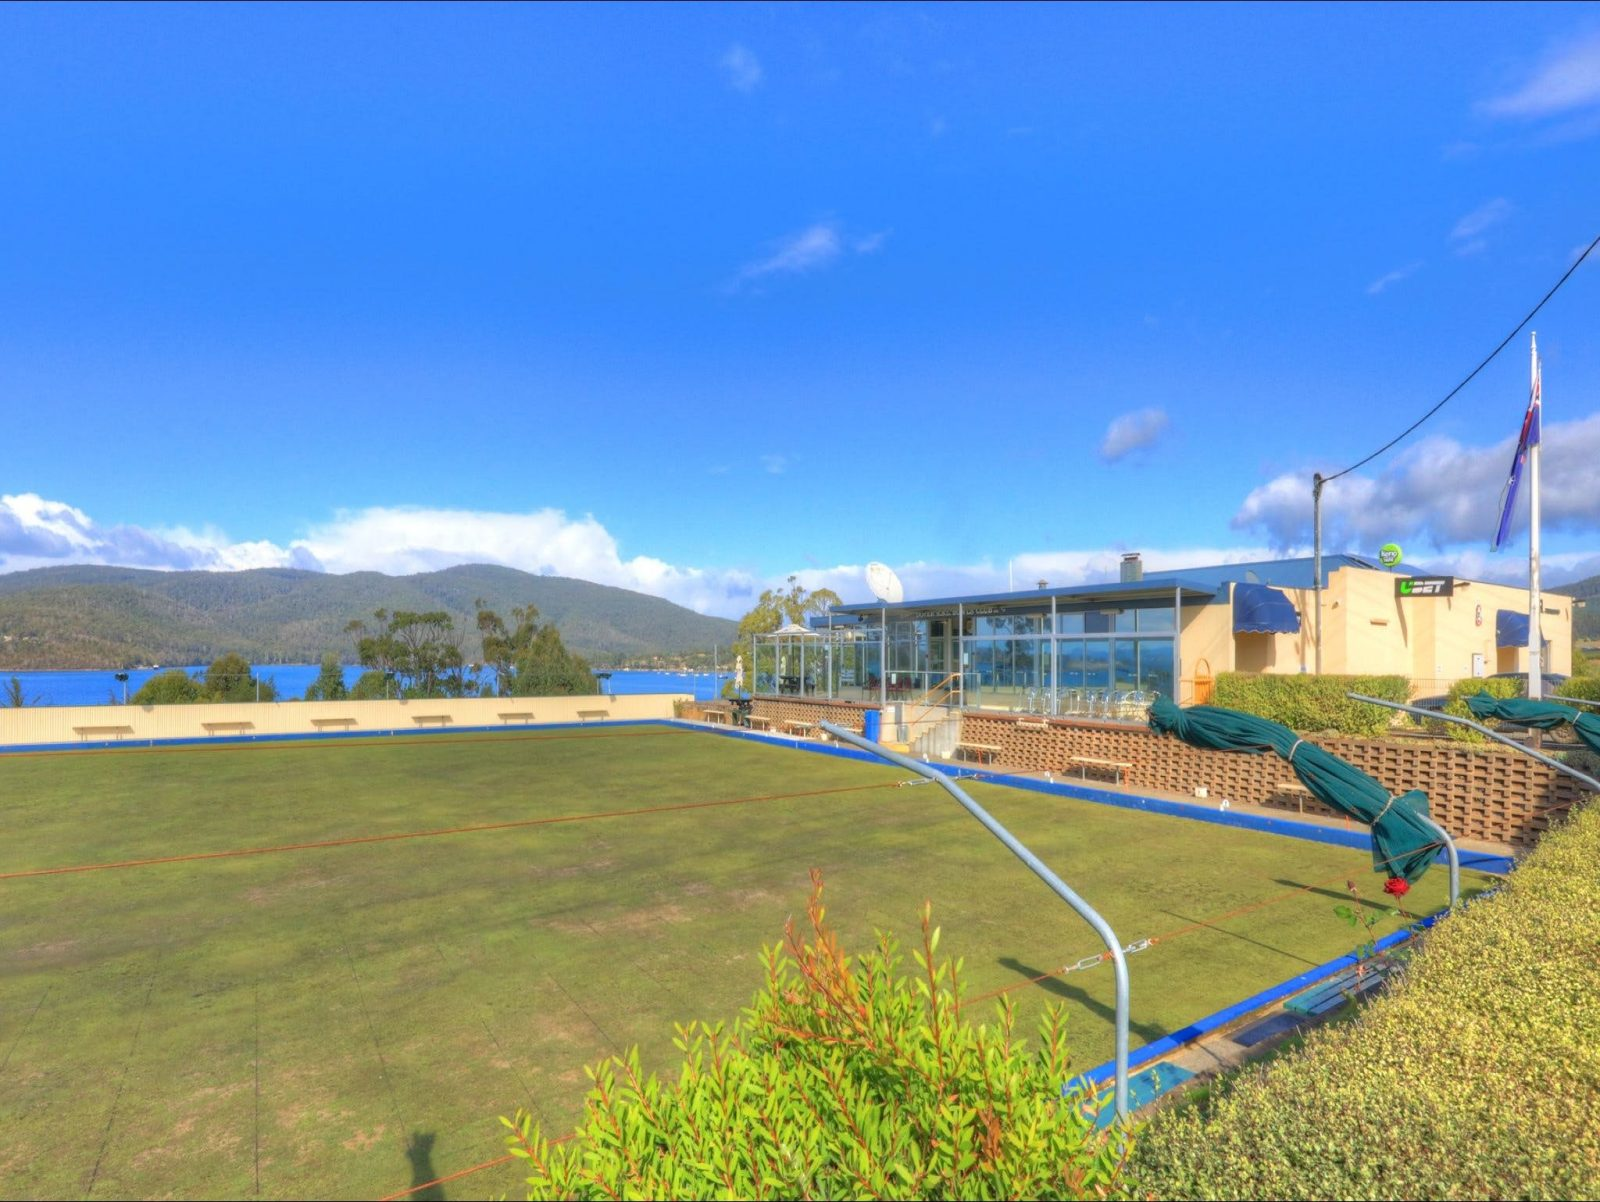 Bayview Dining at Dover RSL Club overlooking Port Esperance Bay and the Lawn Bowling Green